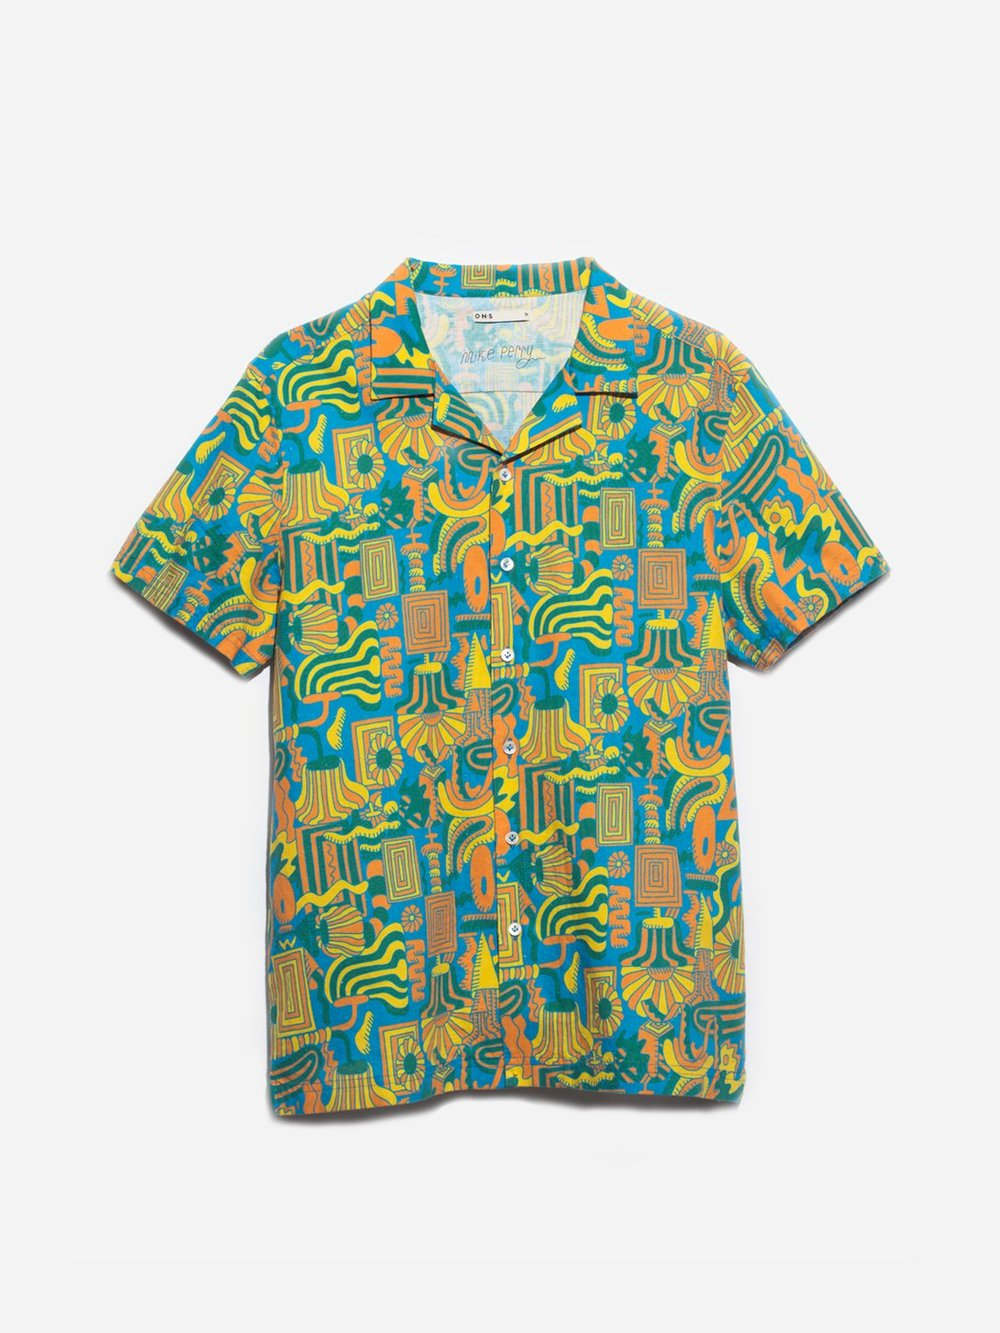 I plan on pairing this shirt with the matching shorts!